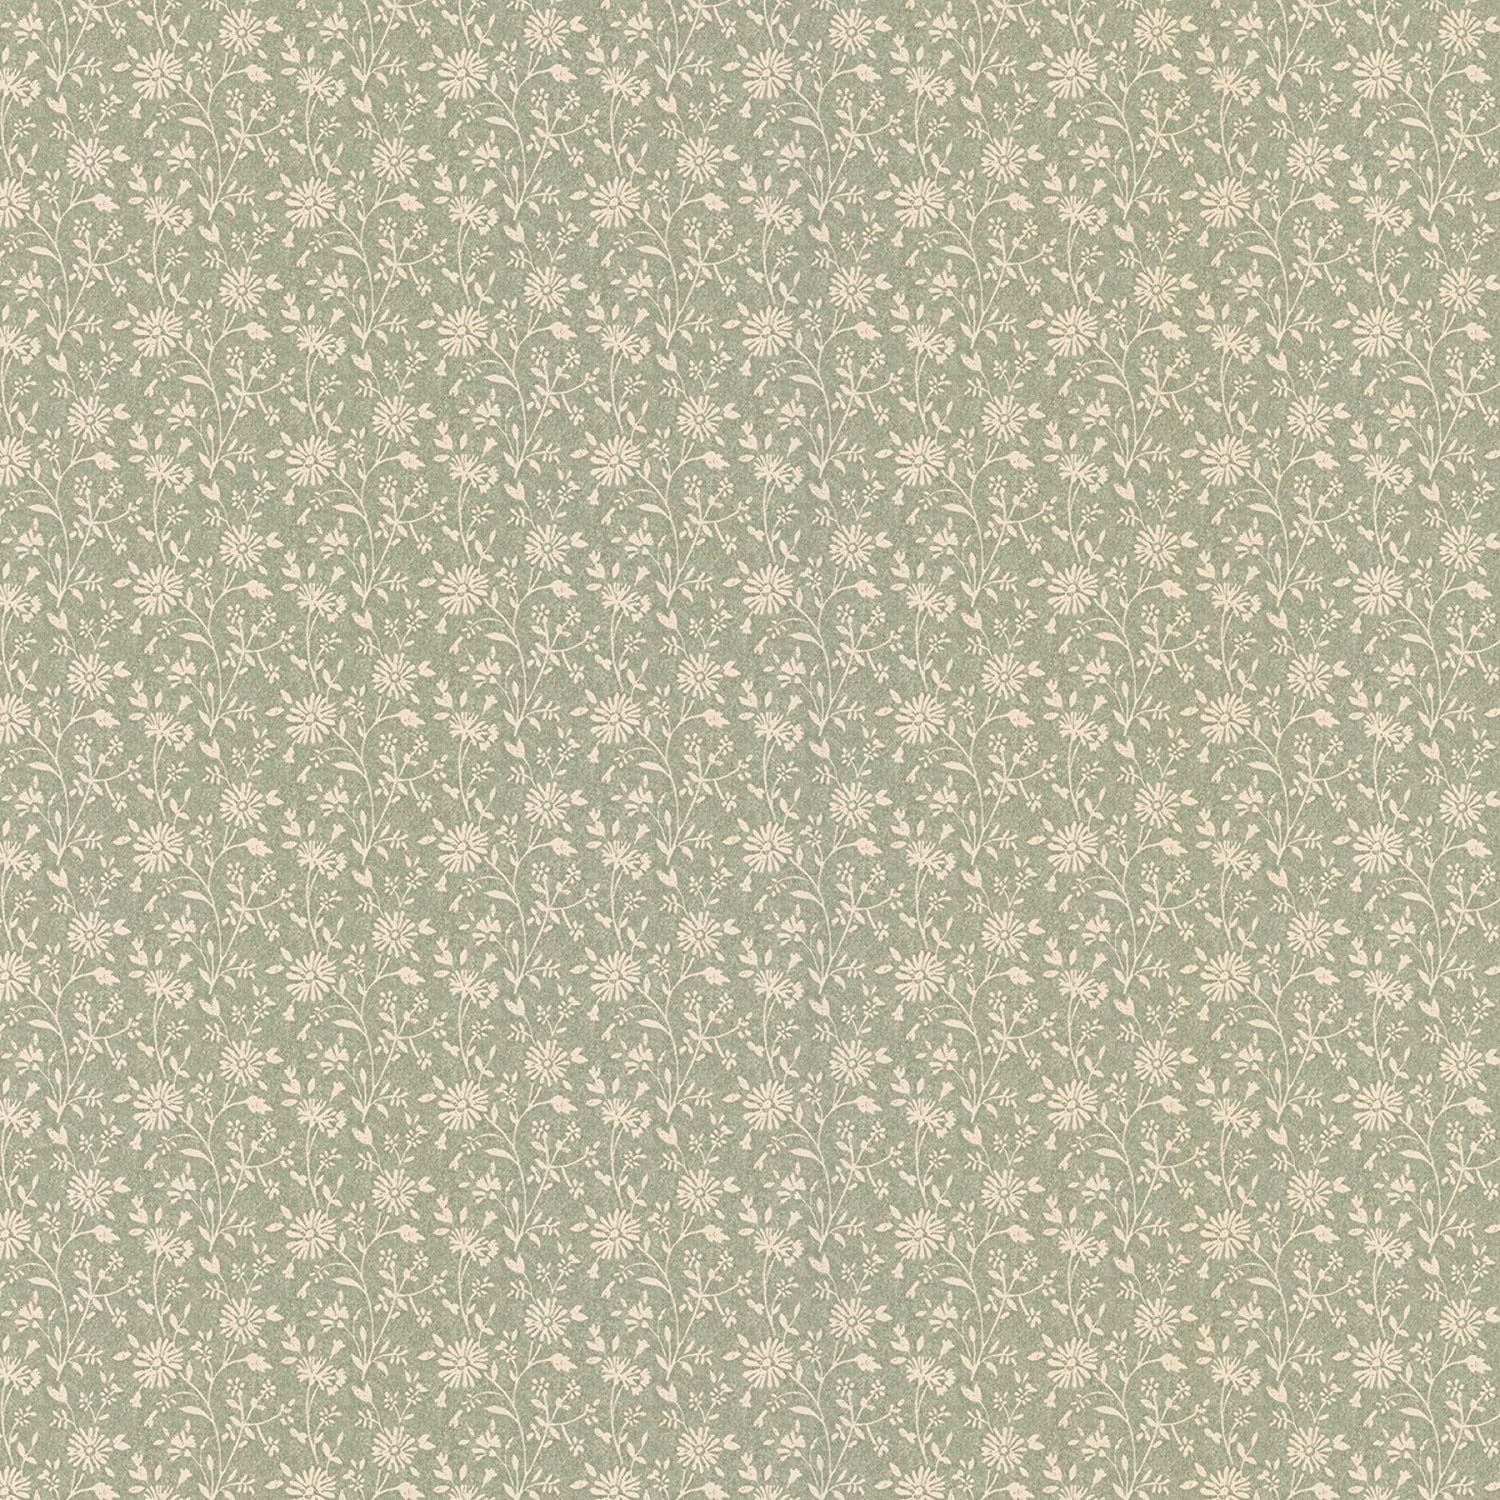 Brewster 413 58501 Janice Country Floral Wallpaper Green